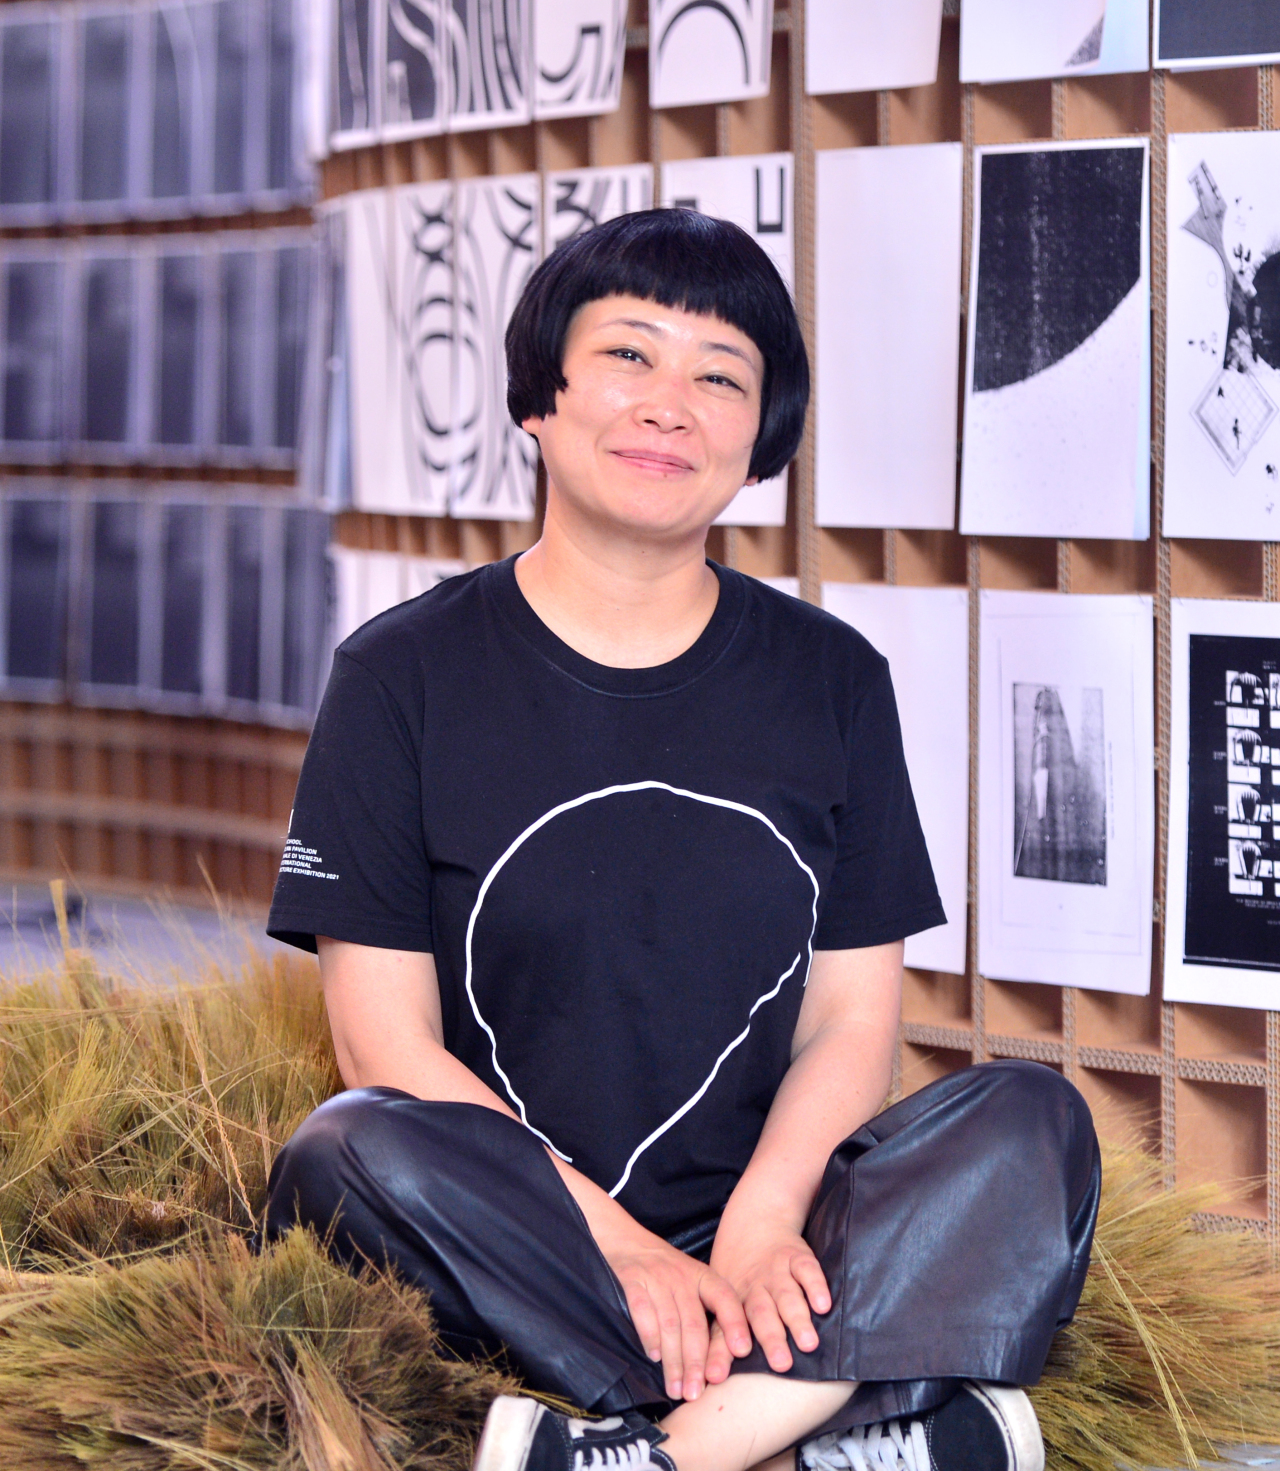 Shin Hae-won, curator of the Korean Pavilion at the 2021 Venice Architecture Biennale, poses for a photo at the Arko Art Center in Seoul, Thursday. (Park Hyun-koo/The Korea Herald)